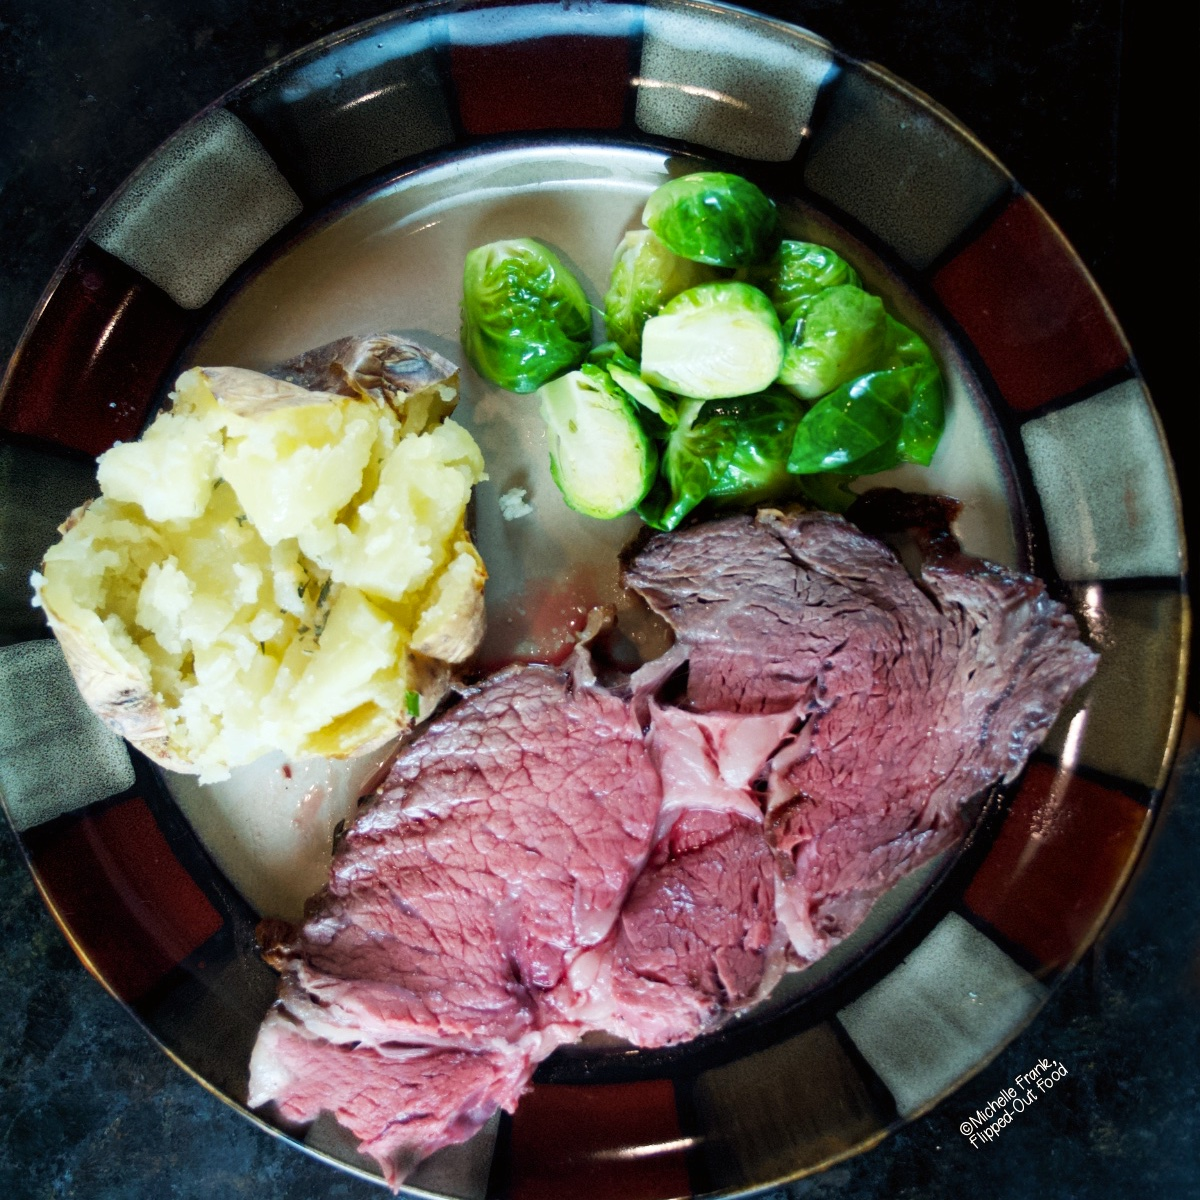 Date Night Prime Rib Roast, showing a single slice on a plate with a baked potato and Brussels Sprouts